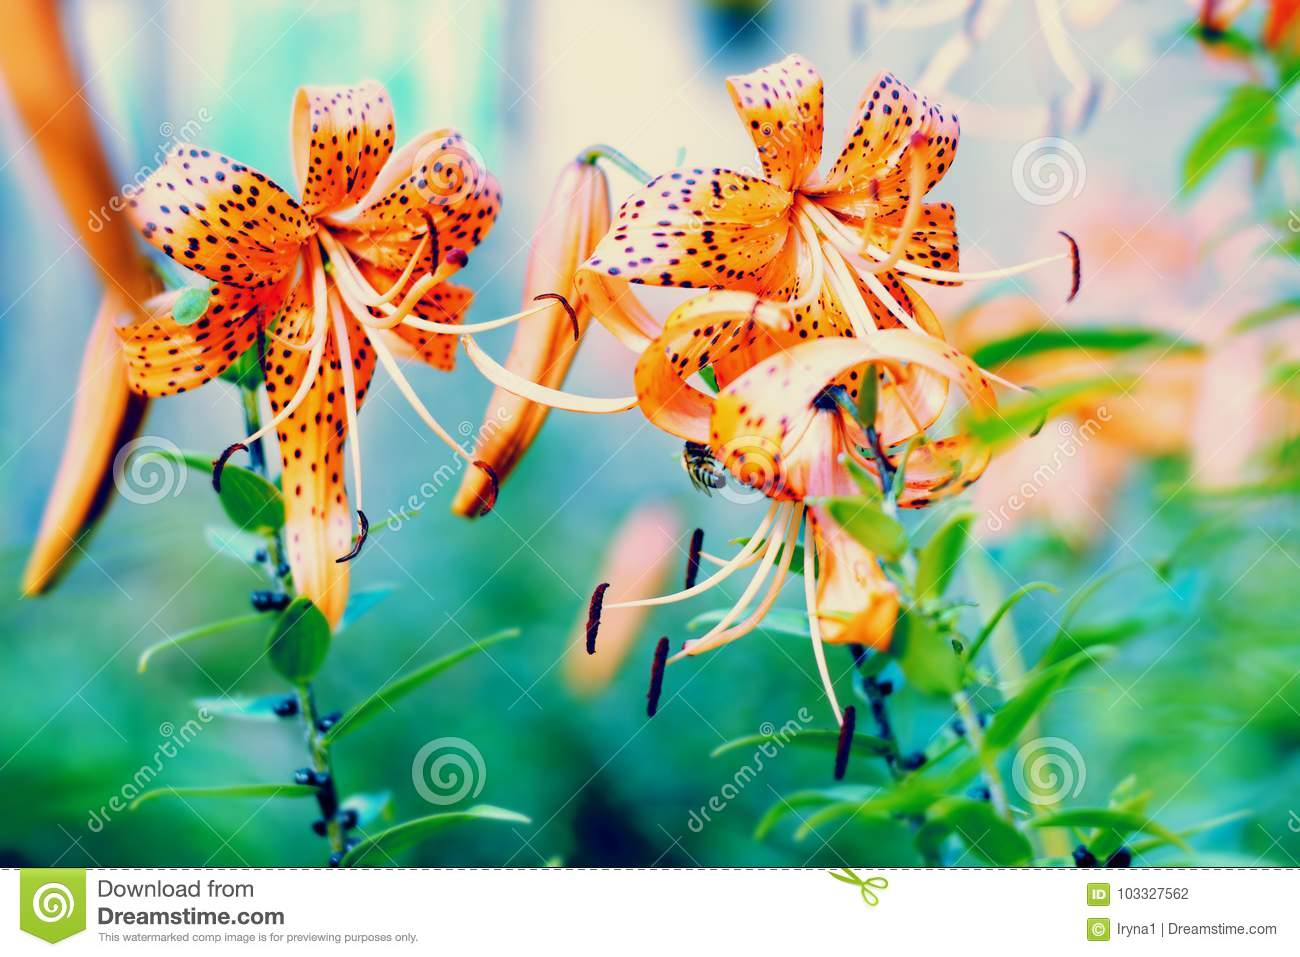 Tiger lily flowers blossoming stock photo image of plant beauty tiger lily flowers blossoming izmirmasajfo